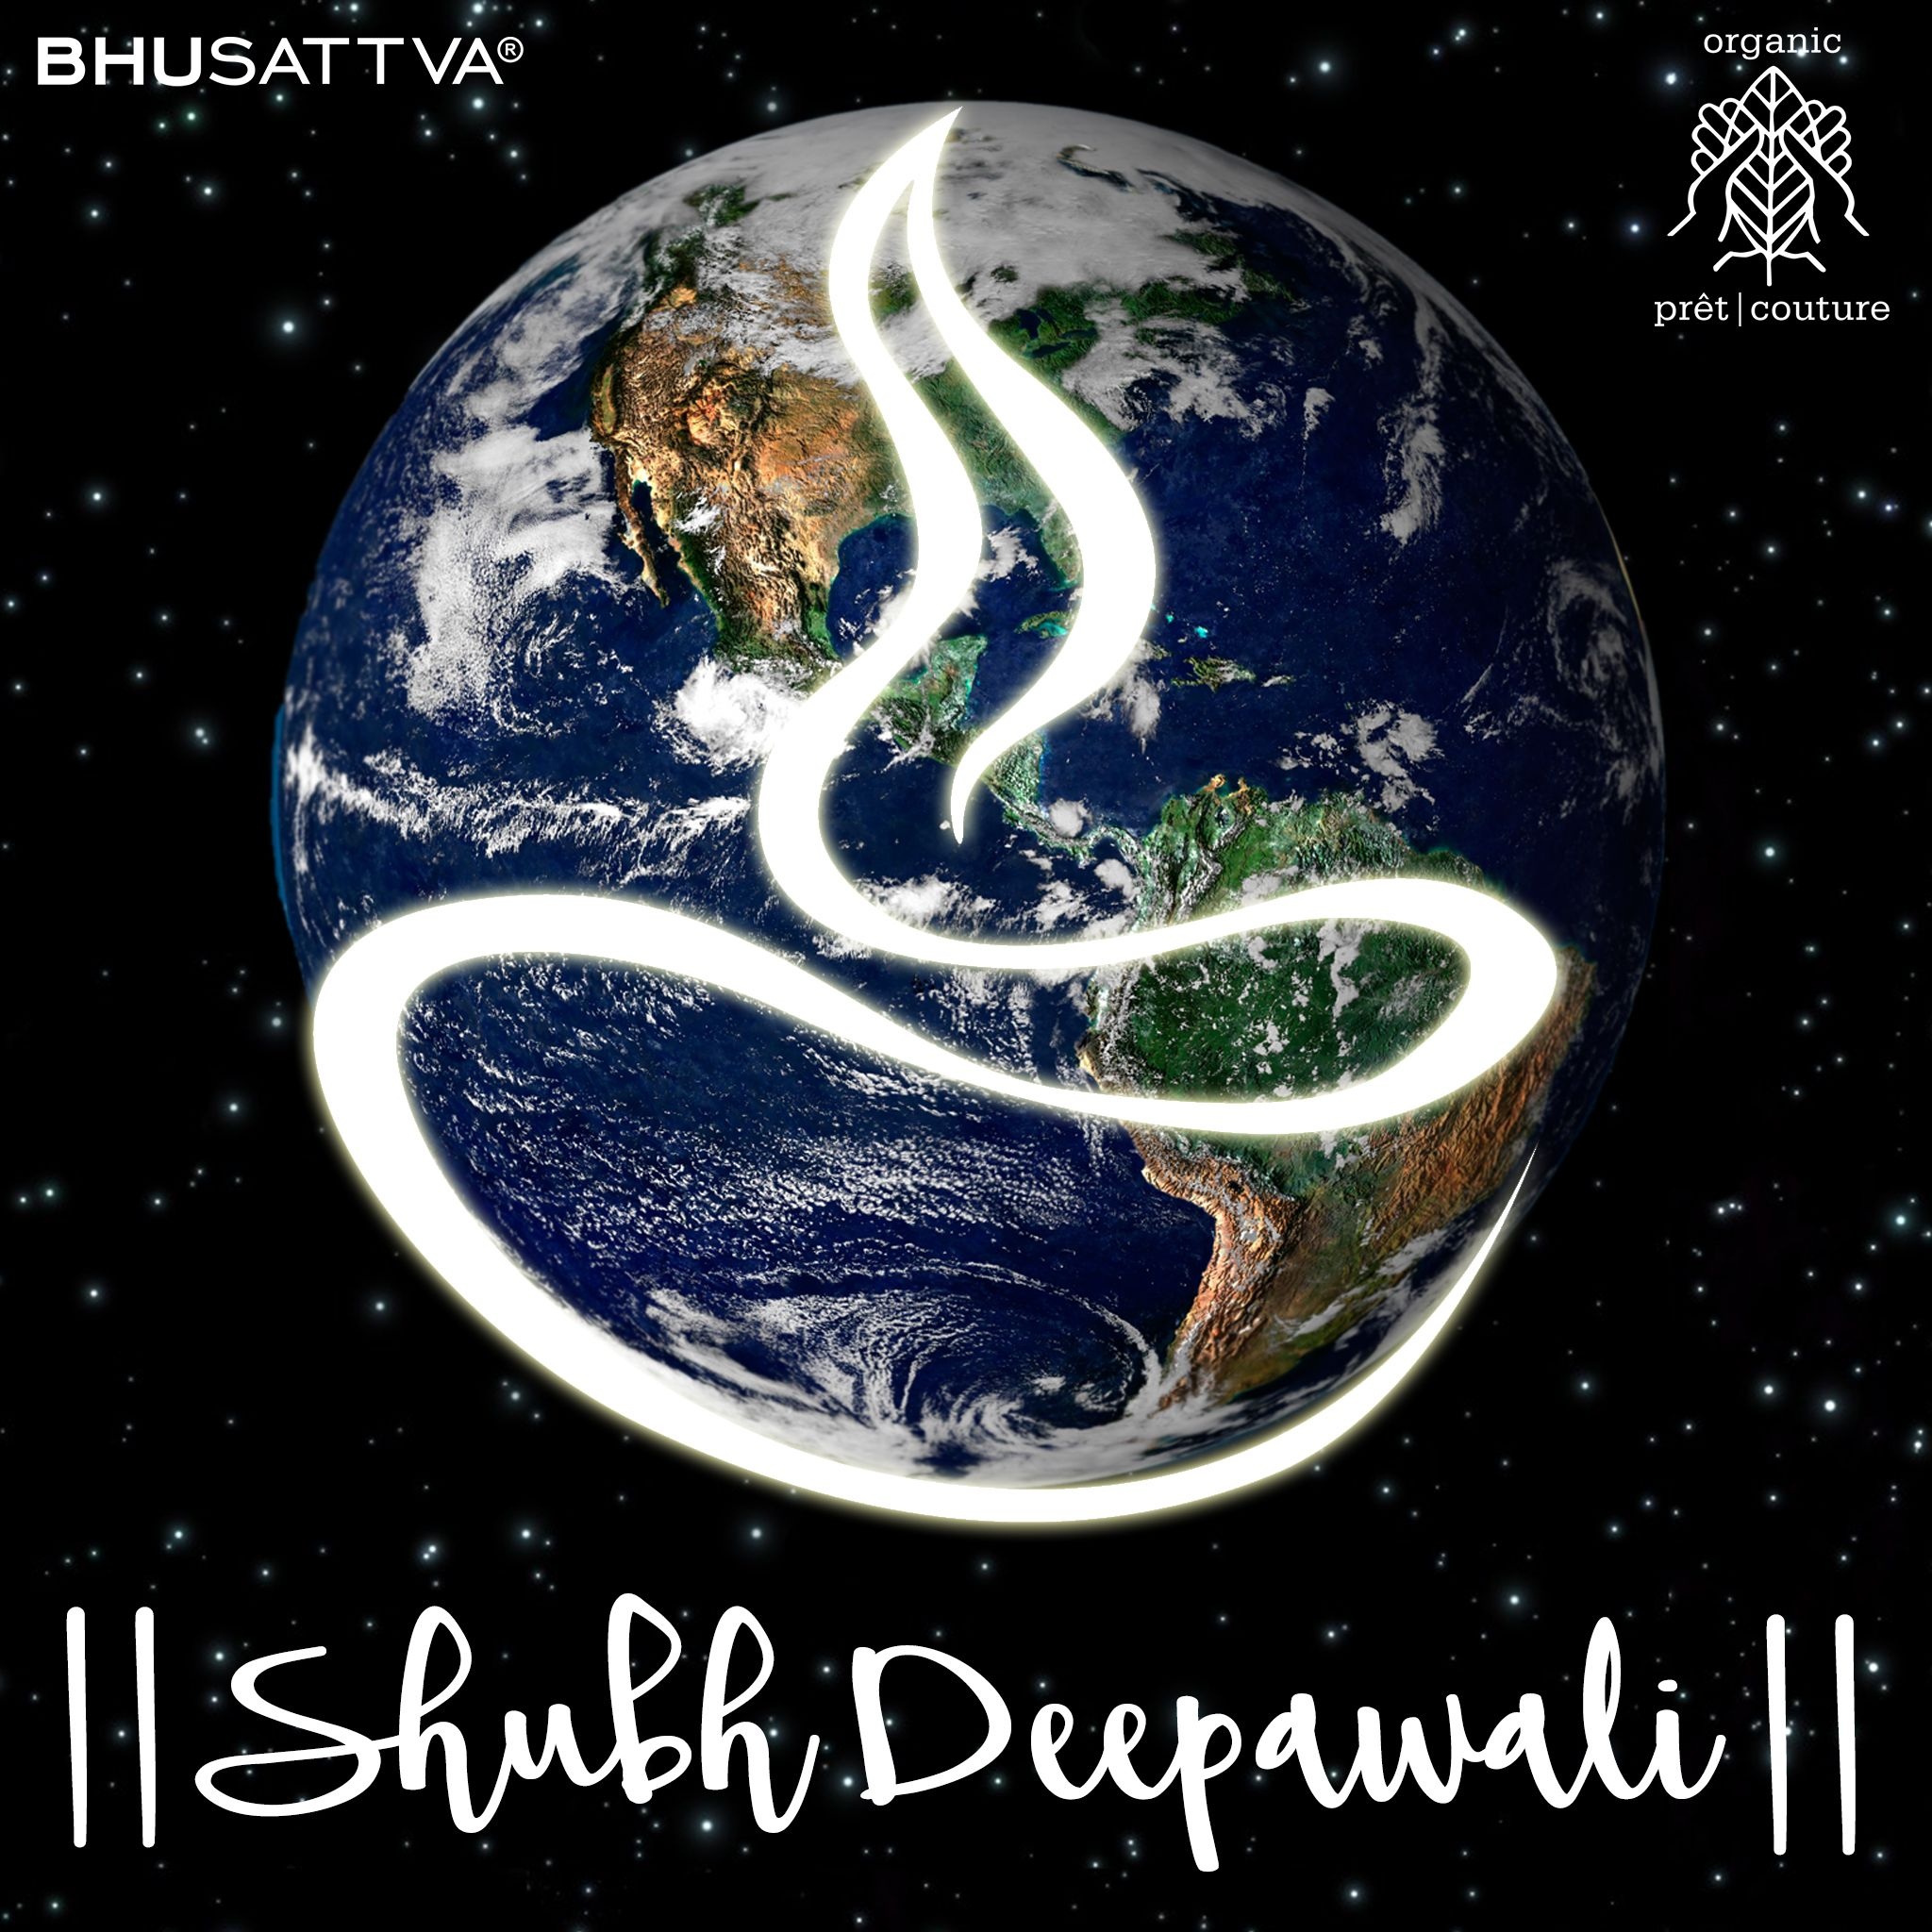 BHUSATTVA wishes one and all, a very HAPPY DIWALI and a PROSPEROUS NEW YEAR !!  May the earth be blessed with more organic living.  #Bhusattva #BhusattvaOrganic #ReflectOrganic #RevealYourself #iWearBhusattva #BelieveWhatYouWear #TrustNature #EarthIsTheOnlyProvider #MysticalNature #CloseToNature #OrganicIdeology #OrganicCollection #NaturalDyes #EcoFashion #OrganicFashion #SustainableFashion #GoOrganic #WearOrganic #DesignerLabel #DesignerWear #EcoFriendly #Handmade #MadeInIndia